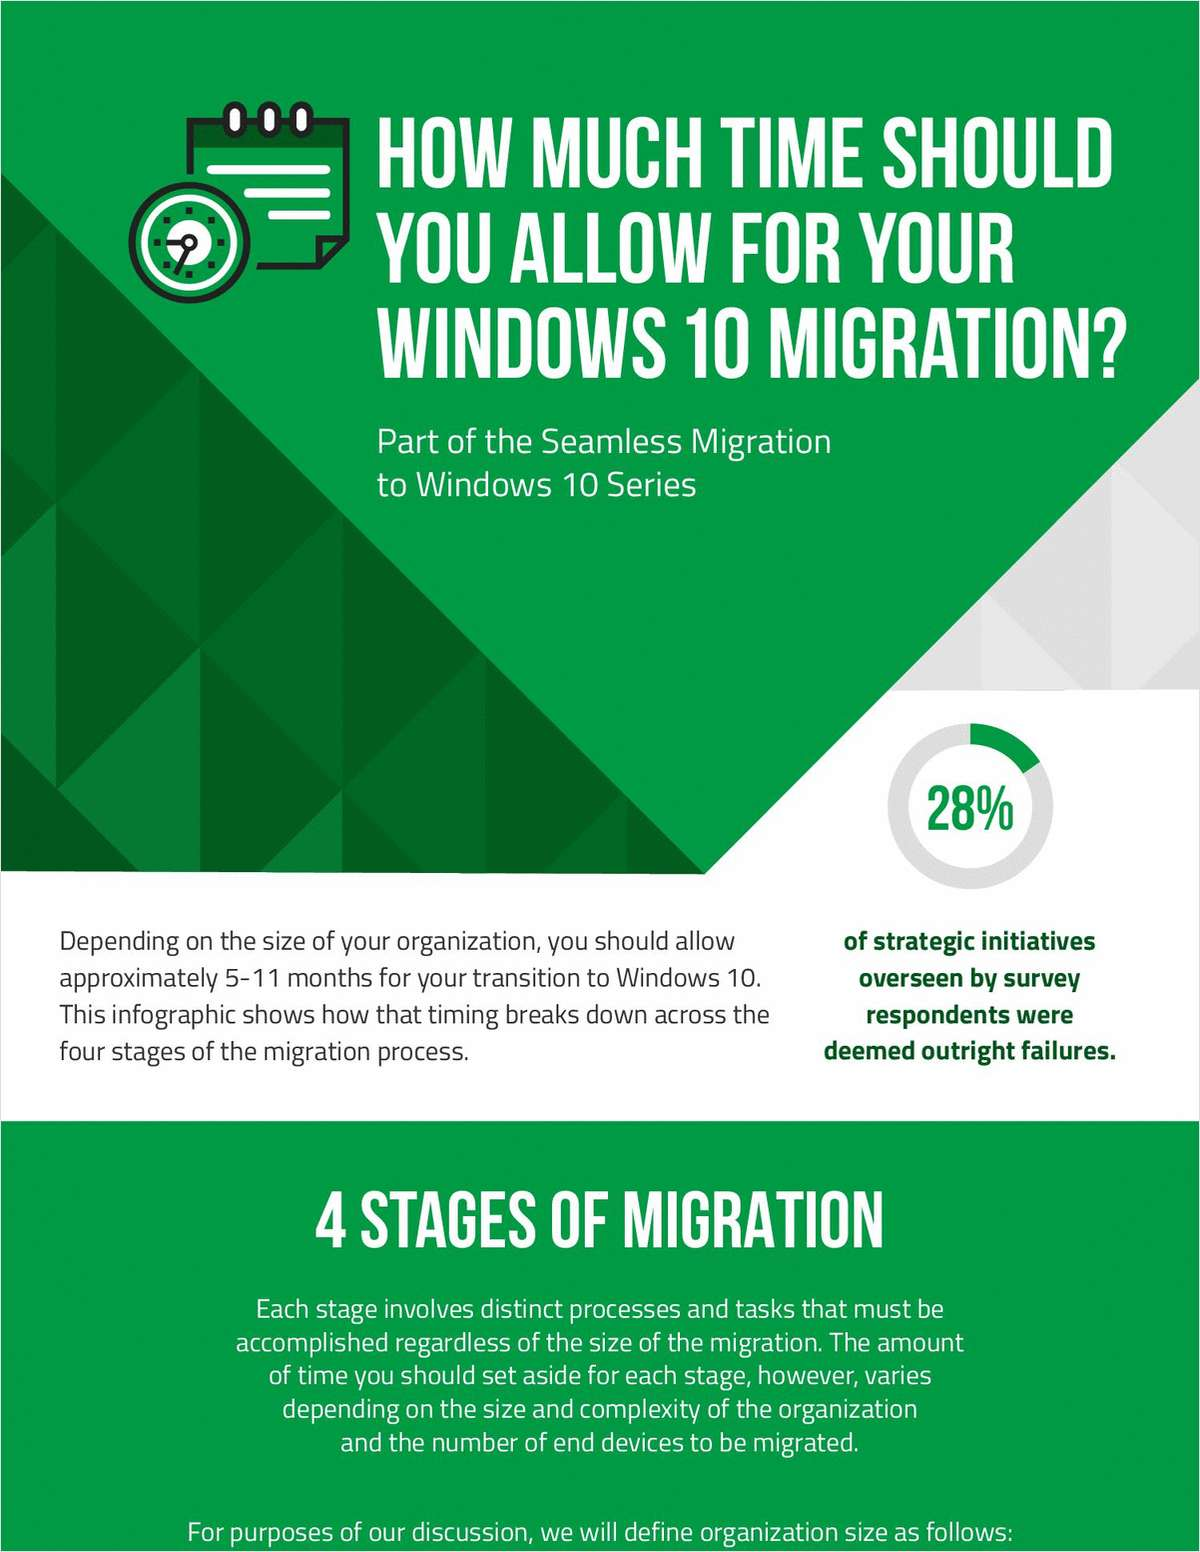 How Much Time Should You Allow for Your Windows 10 Migration